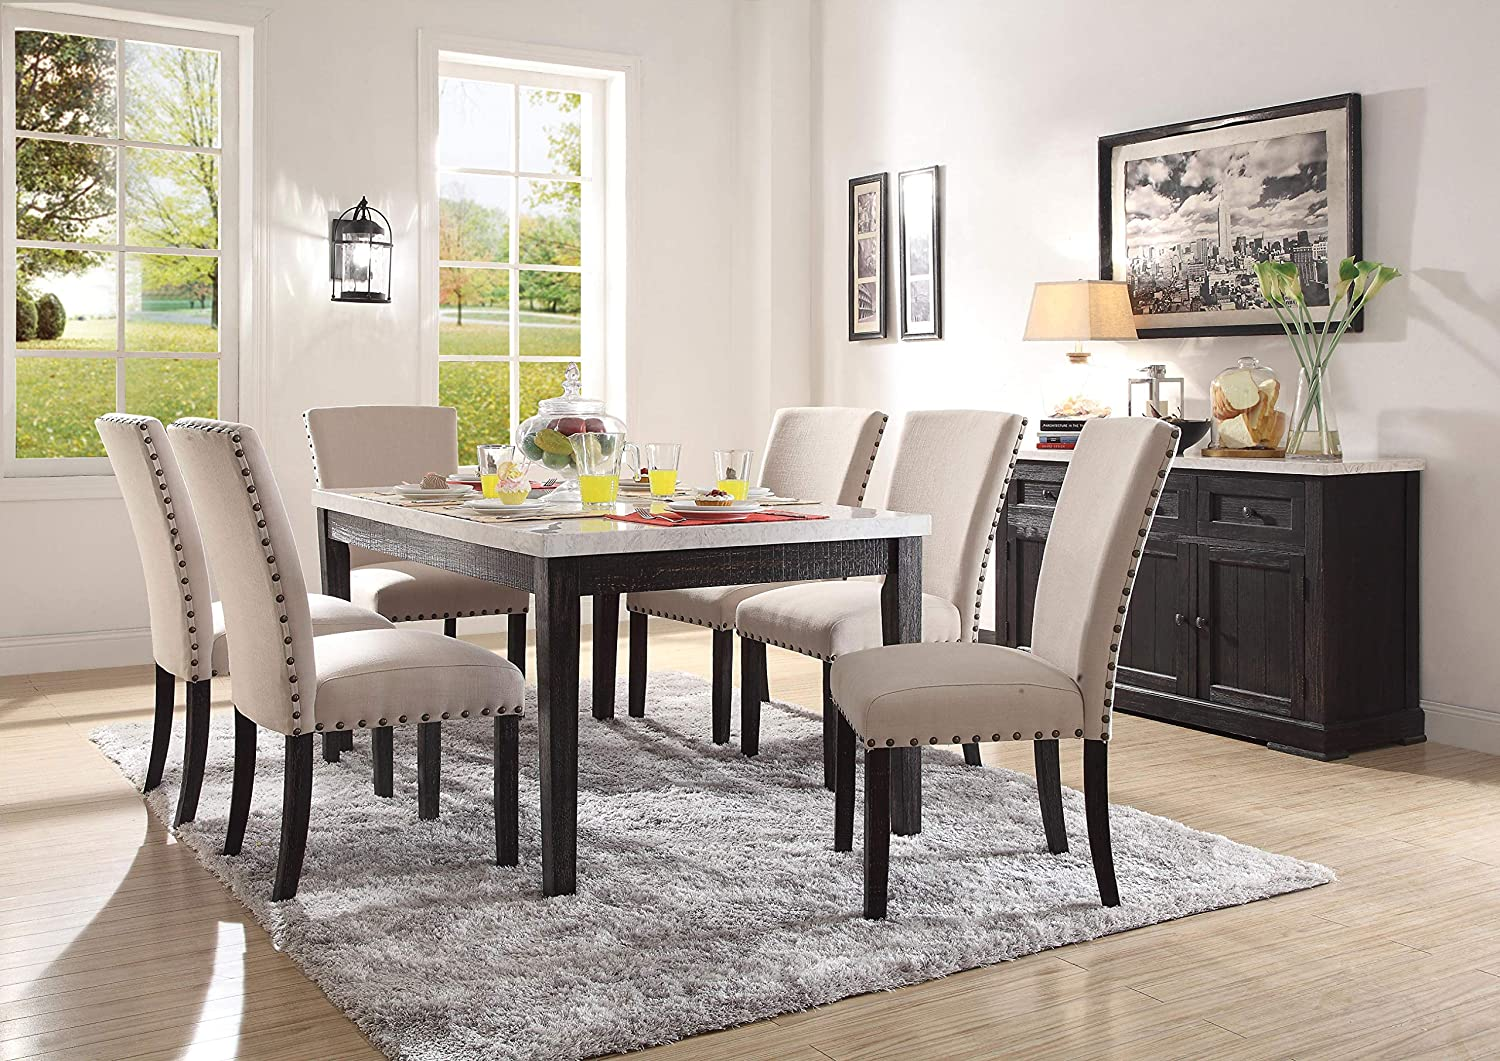 Superb Amazon Com Acme Furniture 72850 Nolan Dining Table White Caraccident5 Cool Chair Designs And Ideas Caraccident5Info